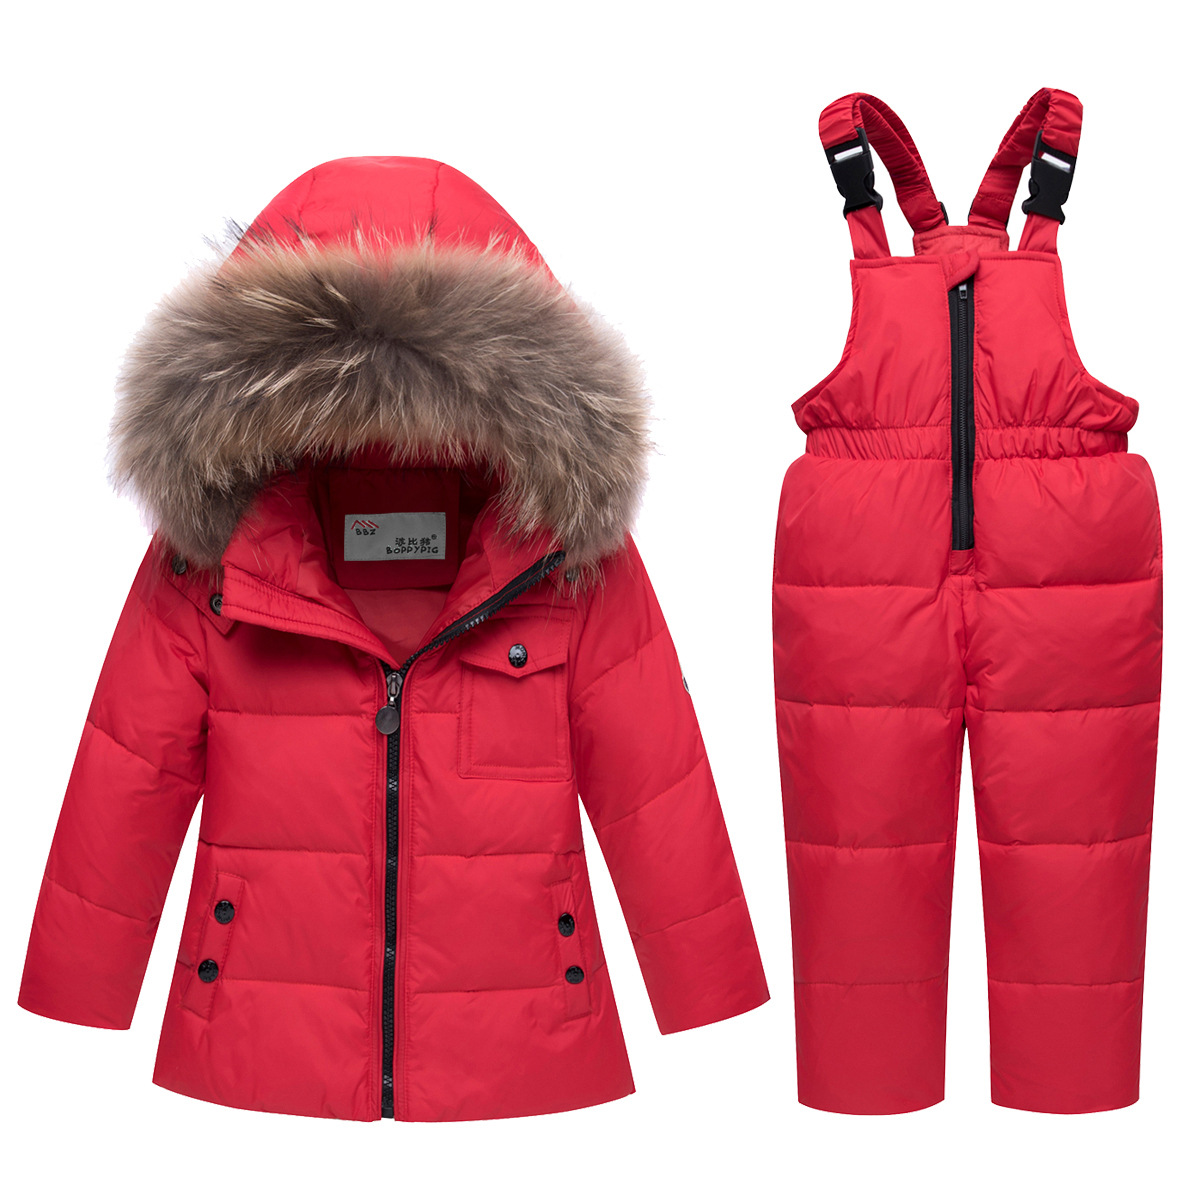 New children's down suit set for boys and girls winter thickening strap pants two piece 2018 winter coat big hair collar skinny blazer and pants two piece suit page 5